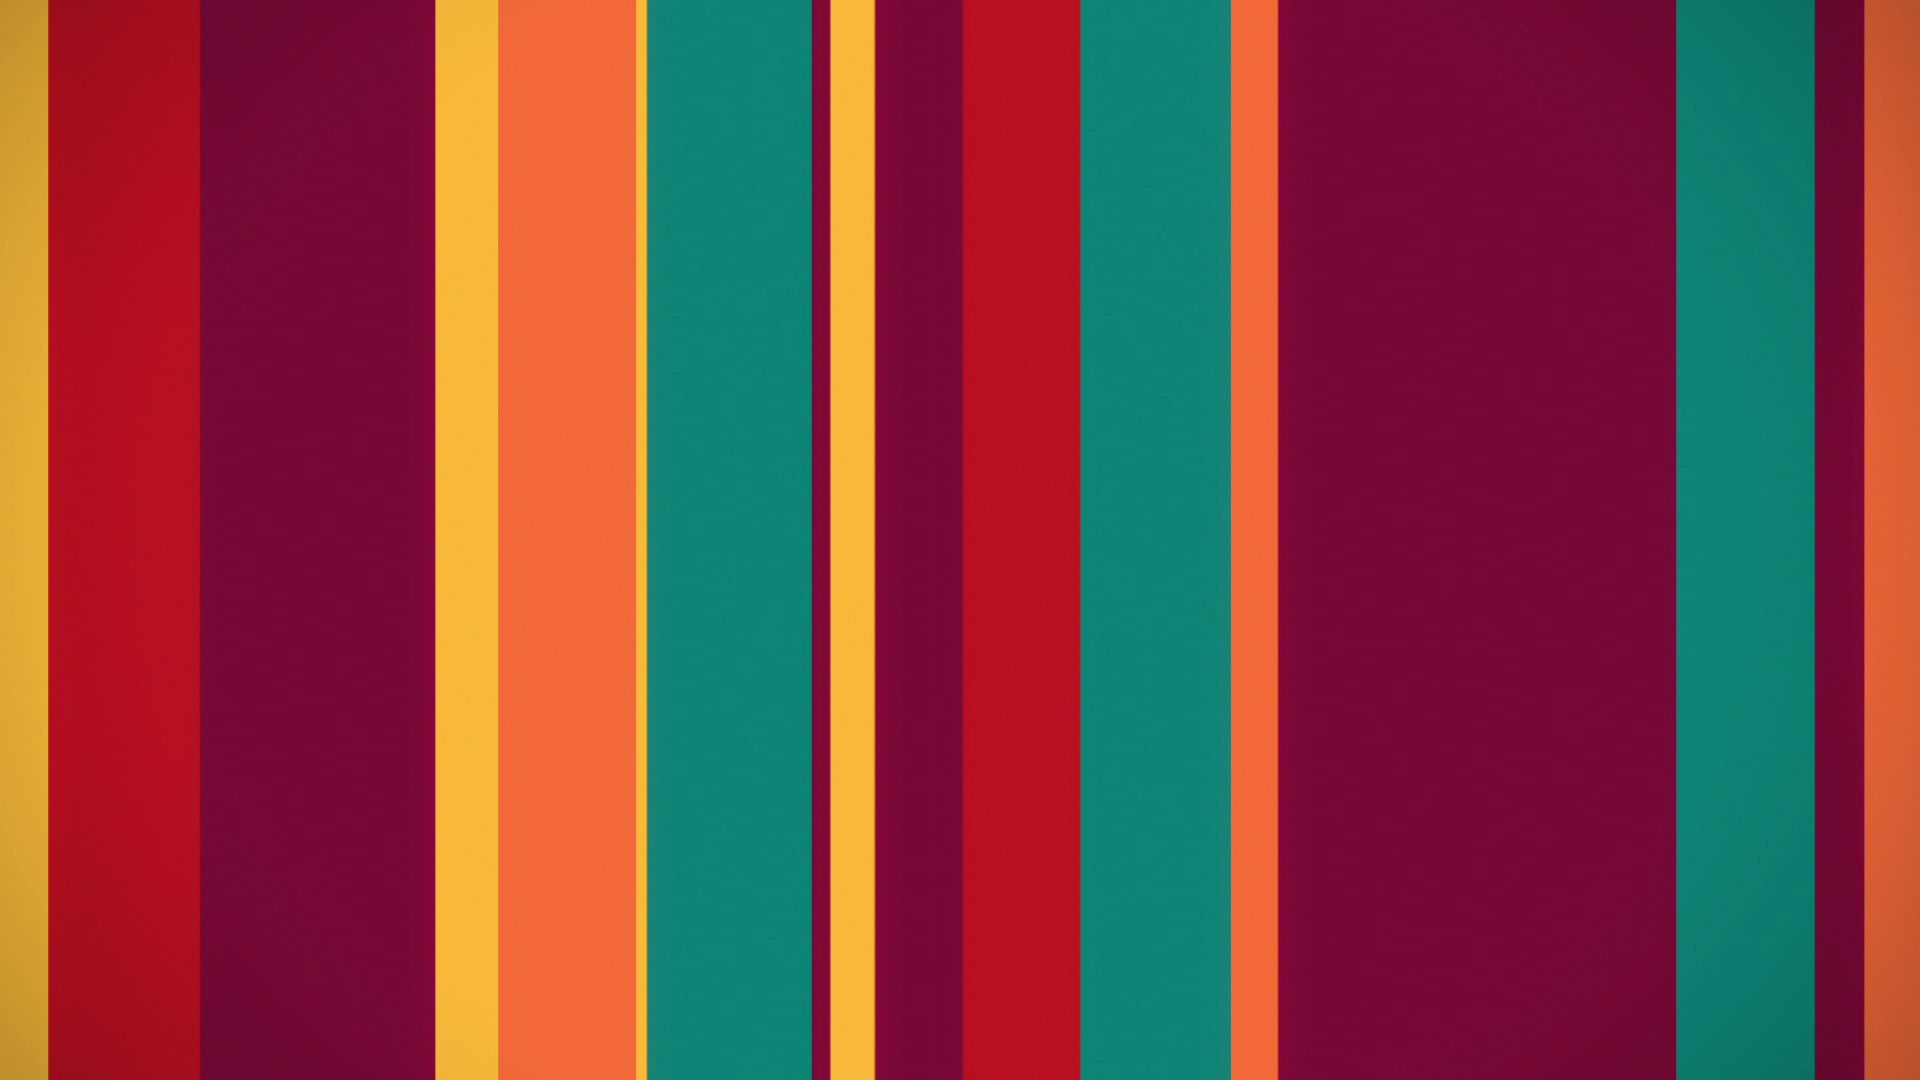 color stripes 5 downloops creative motion backgrounds